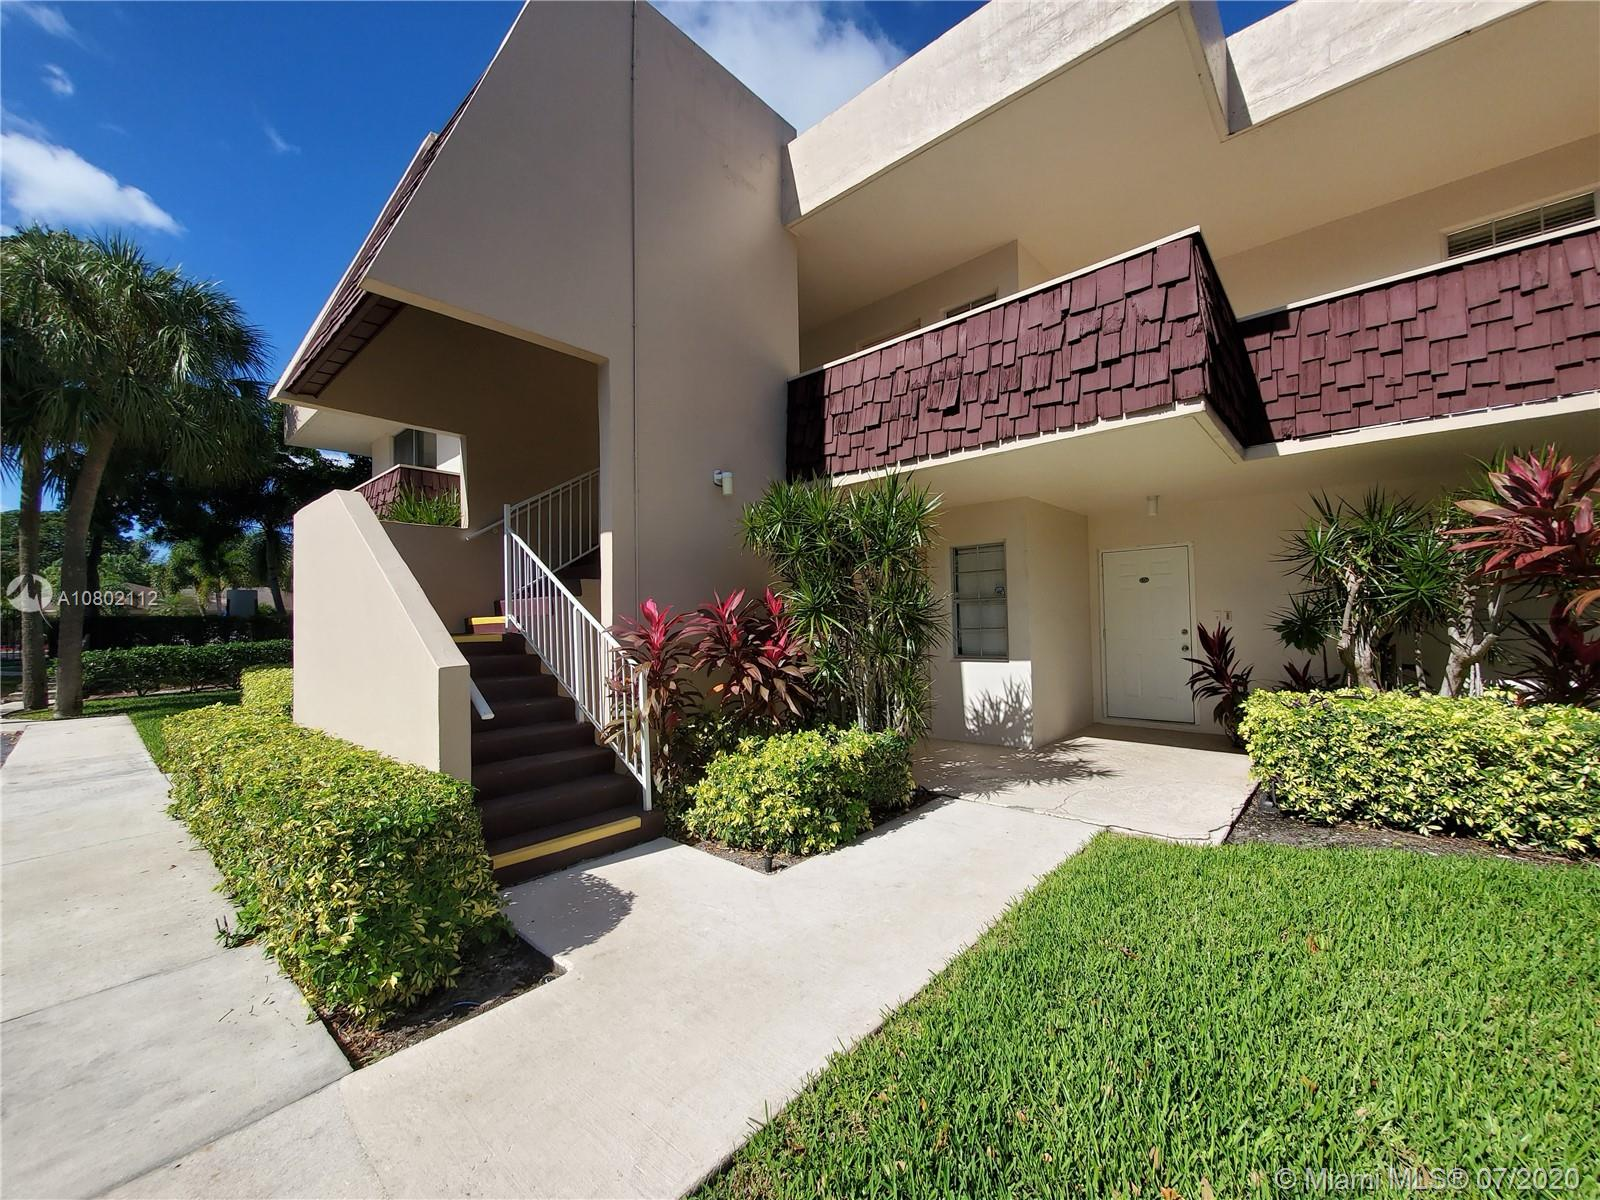 """MOVE-IN READY ON A 2nd FLOOR CORNER UNIT.PRICED TO SELL. APPRAISAL VALUE IS $ 206,000.00.STUNNING VIEWS ON A GOLF. JUST STEPS AWAY FROM THE POOL. PLENTY OF PARKING.ALL BRAND NEW S/S APPLIANCES """"SAMSUNG"""".NO AGE RESTICTION. WASHER AND DRYER IN THE UNIT.ASSOCIATION REQUIRES 20% DOWN."""